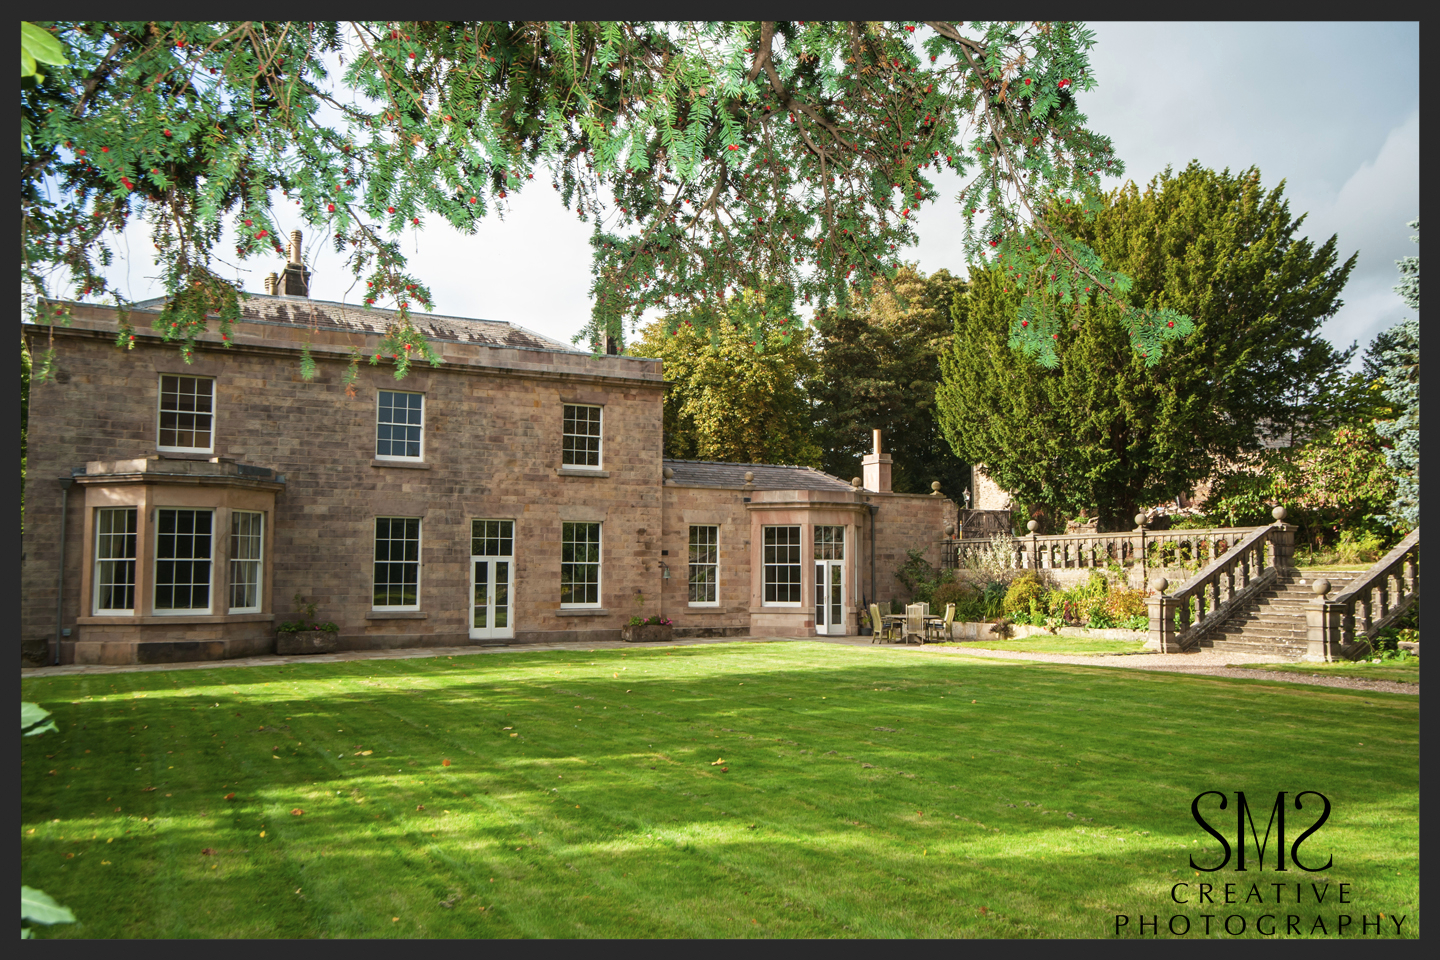 SMS Creative Photography Darley House